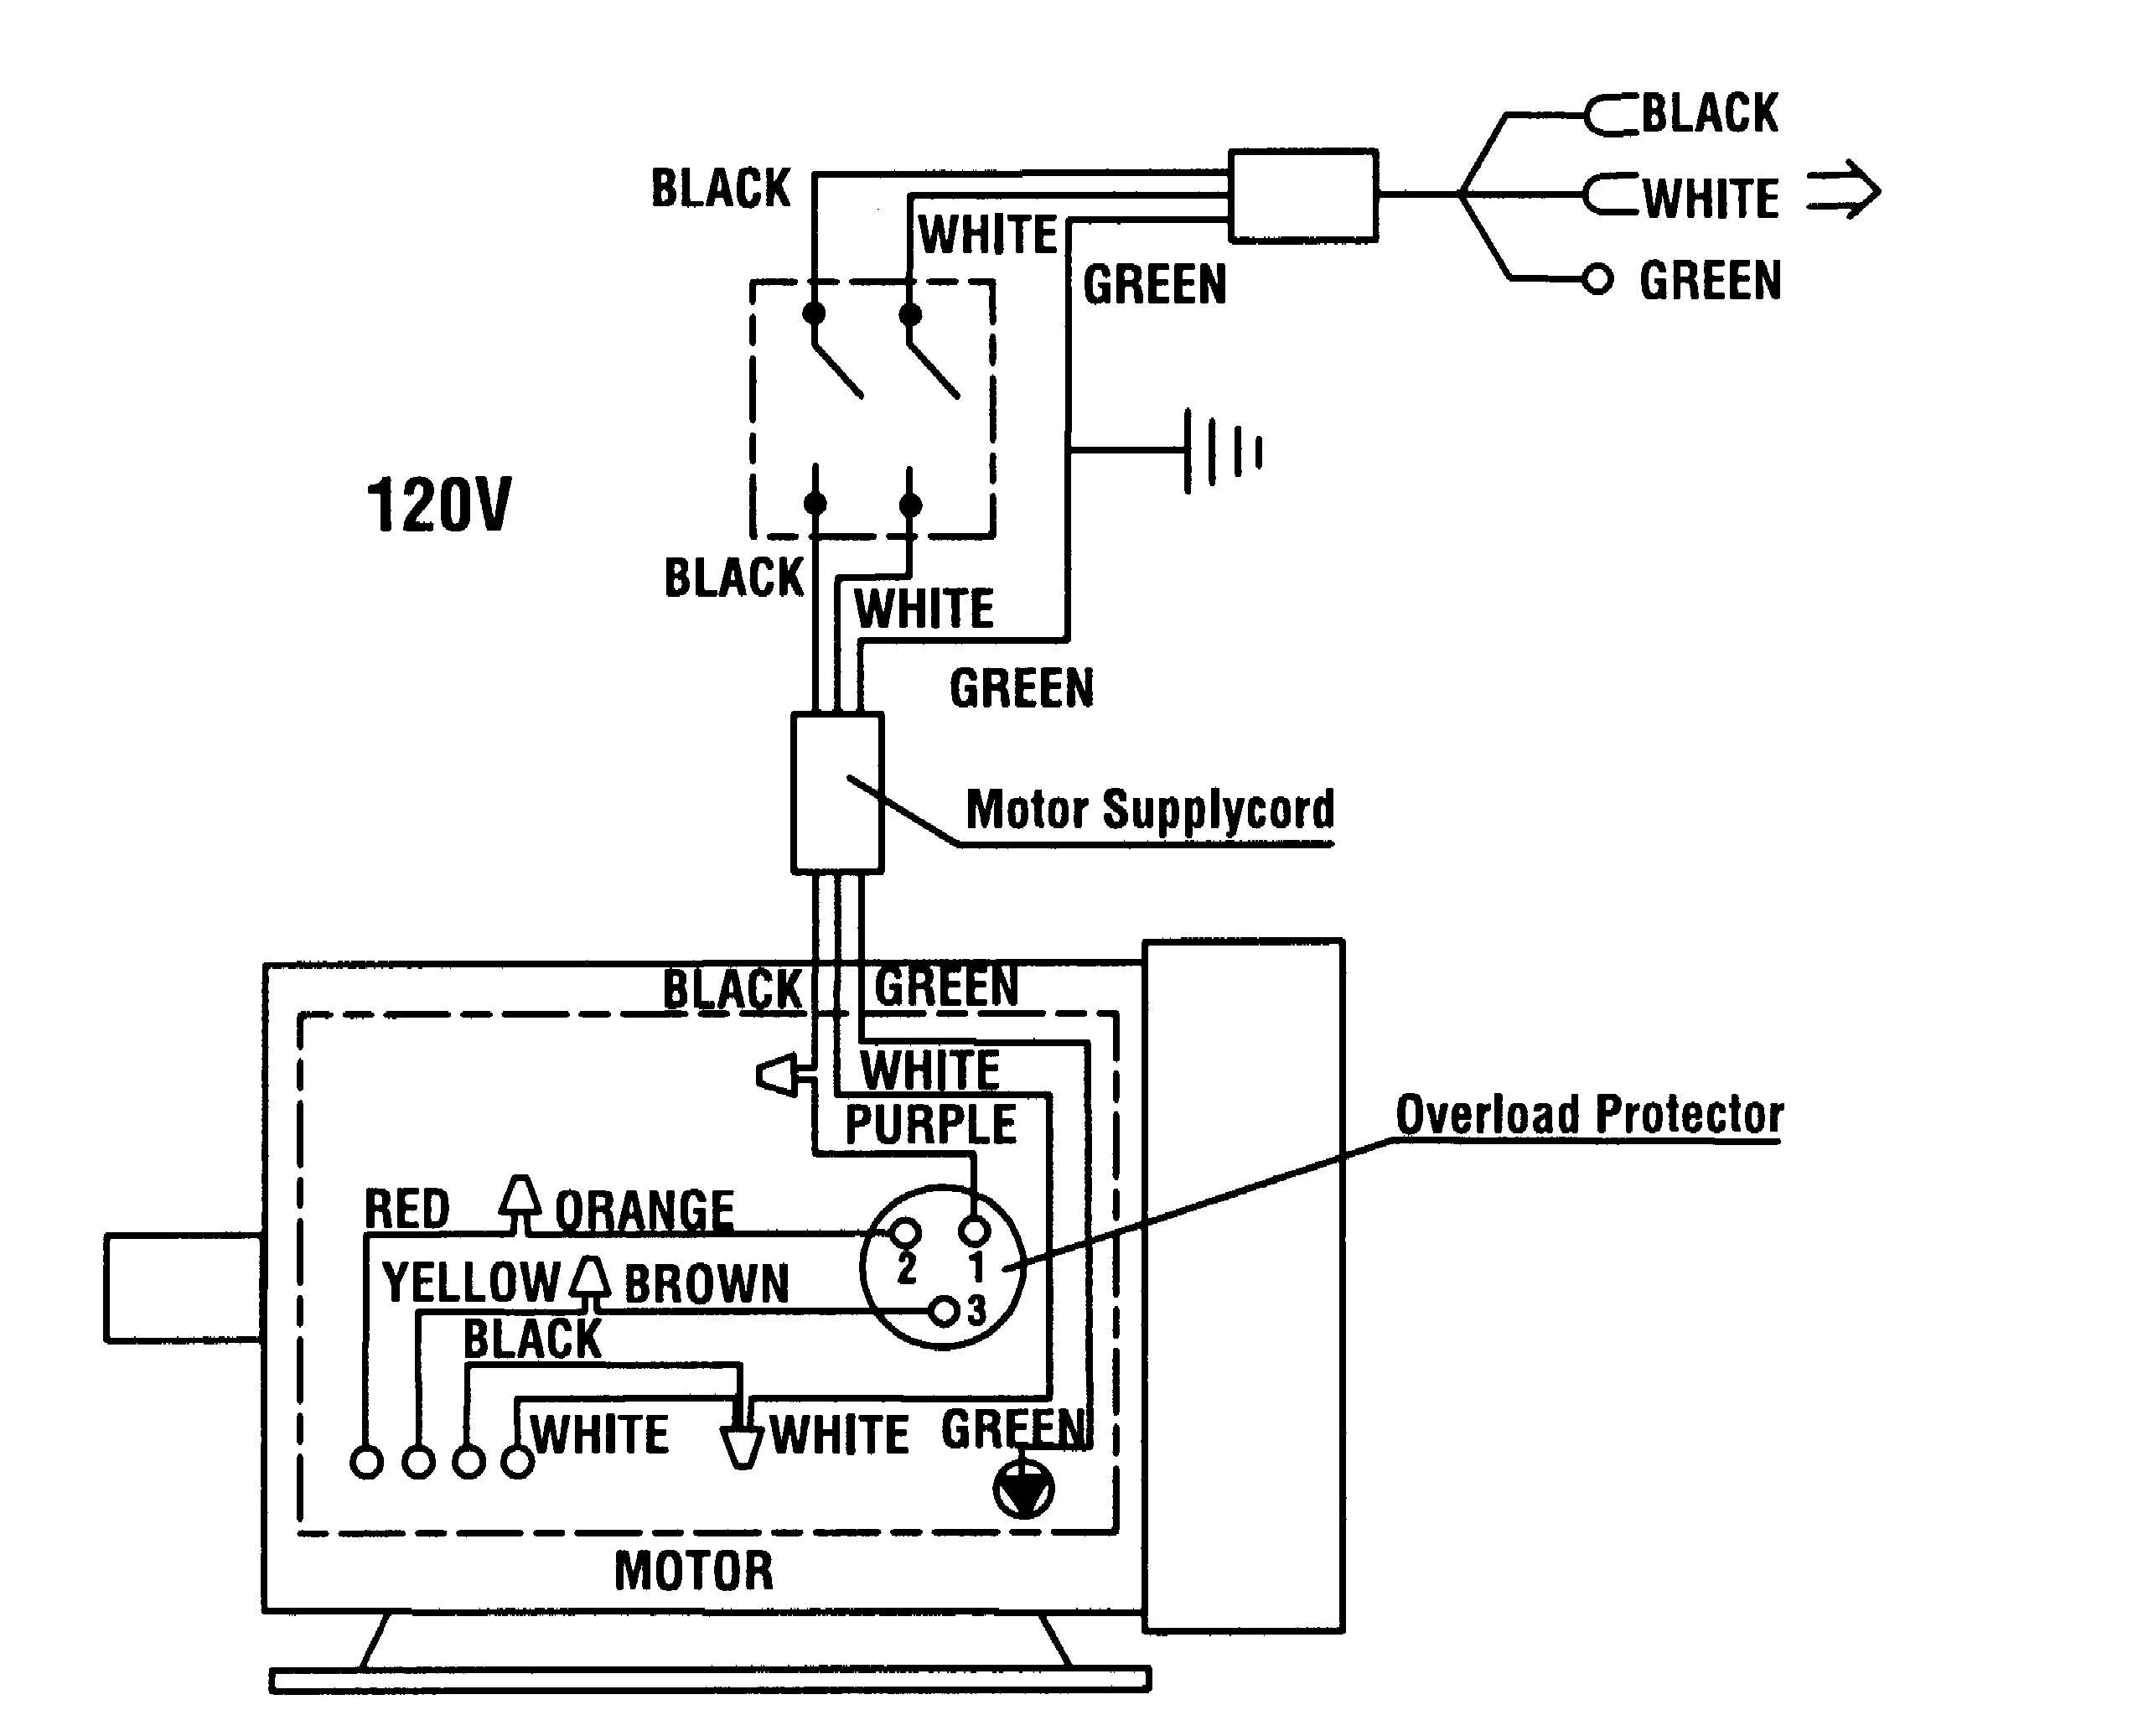 refrigeration wiring diagrams images wheels another peg gator wiring question on new wiring trips breaker